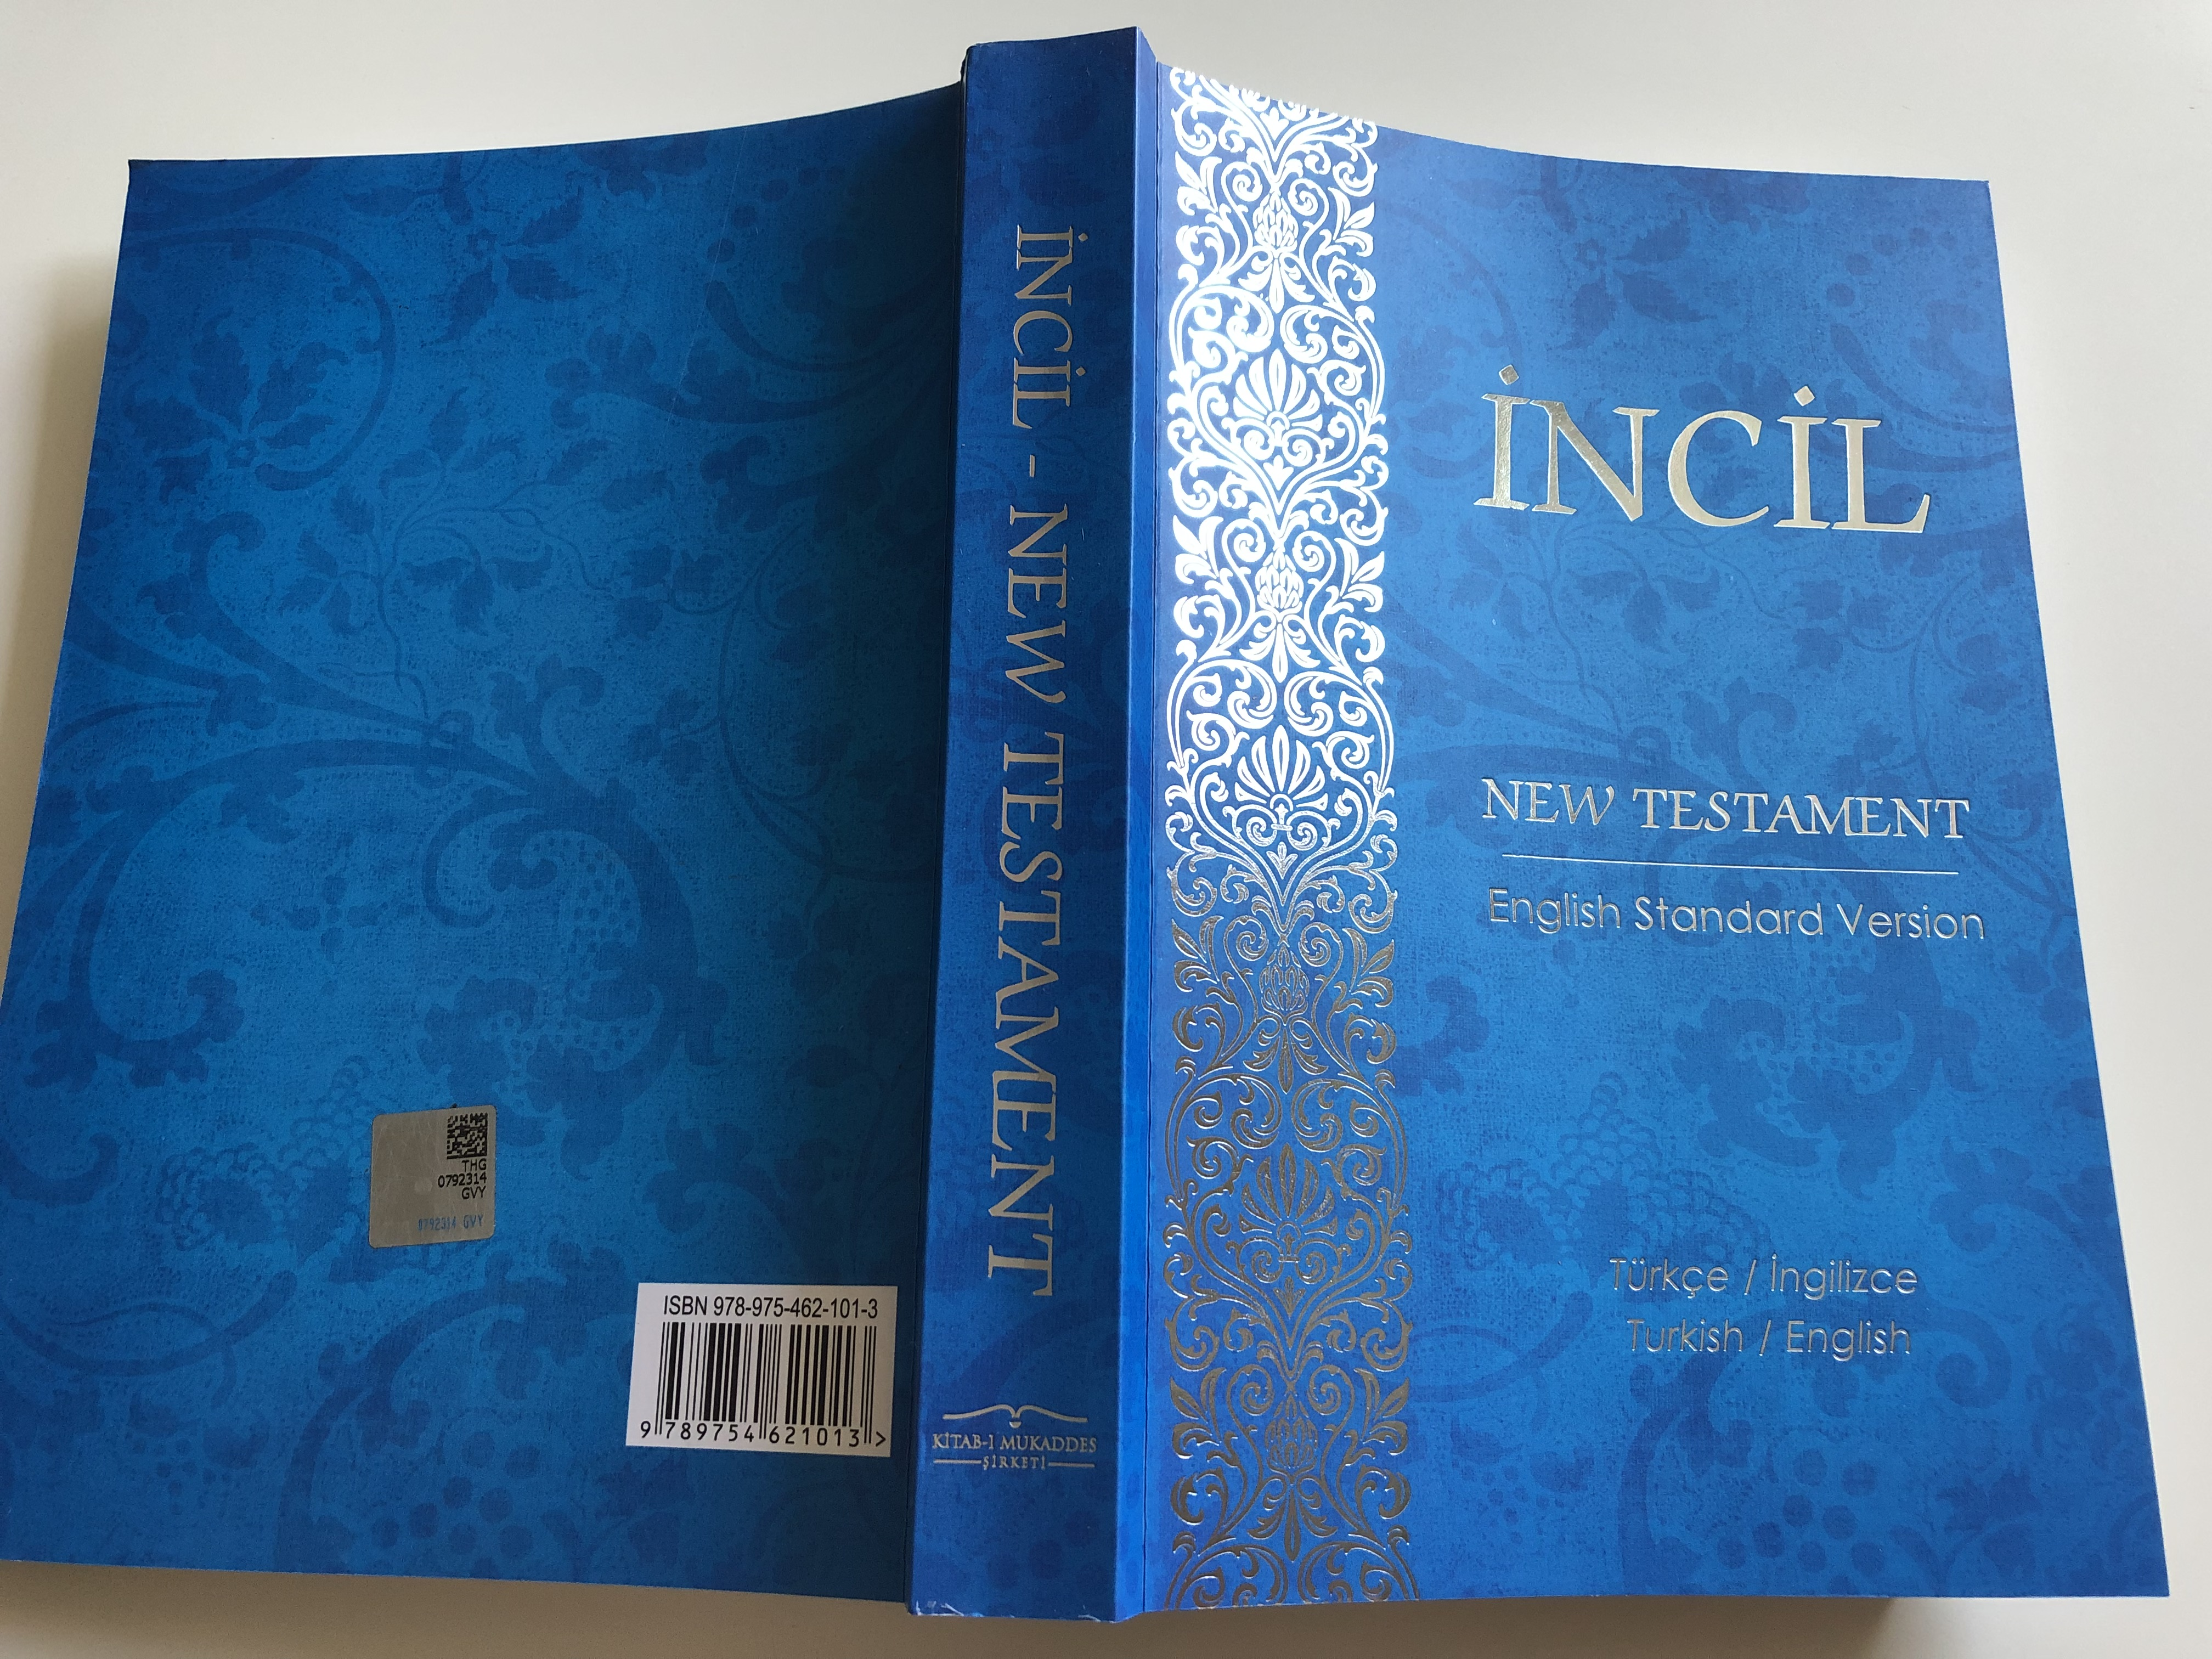 incil-new-testament-esv-english-standard-version-turkish-english-bilingual-parallel-text-kitab-i-mukaddes-sirketi-paperback-2017-13-.jpg